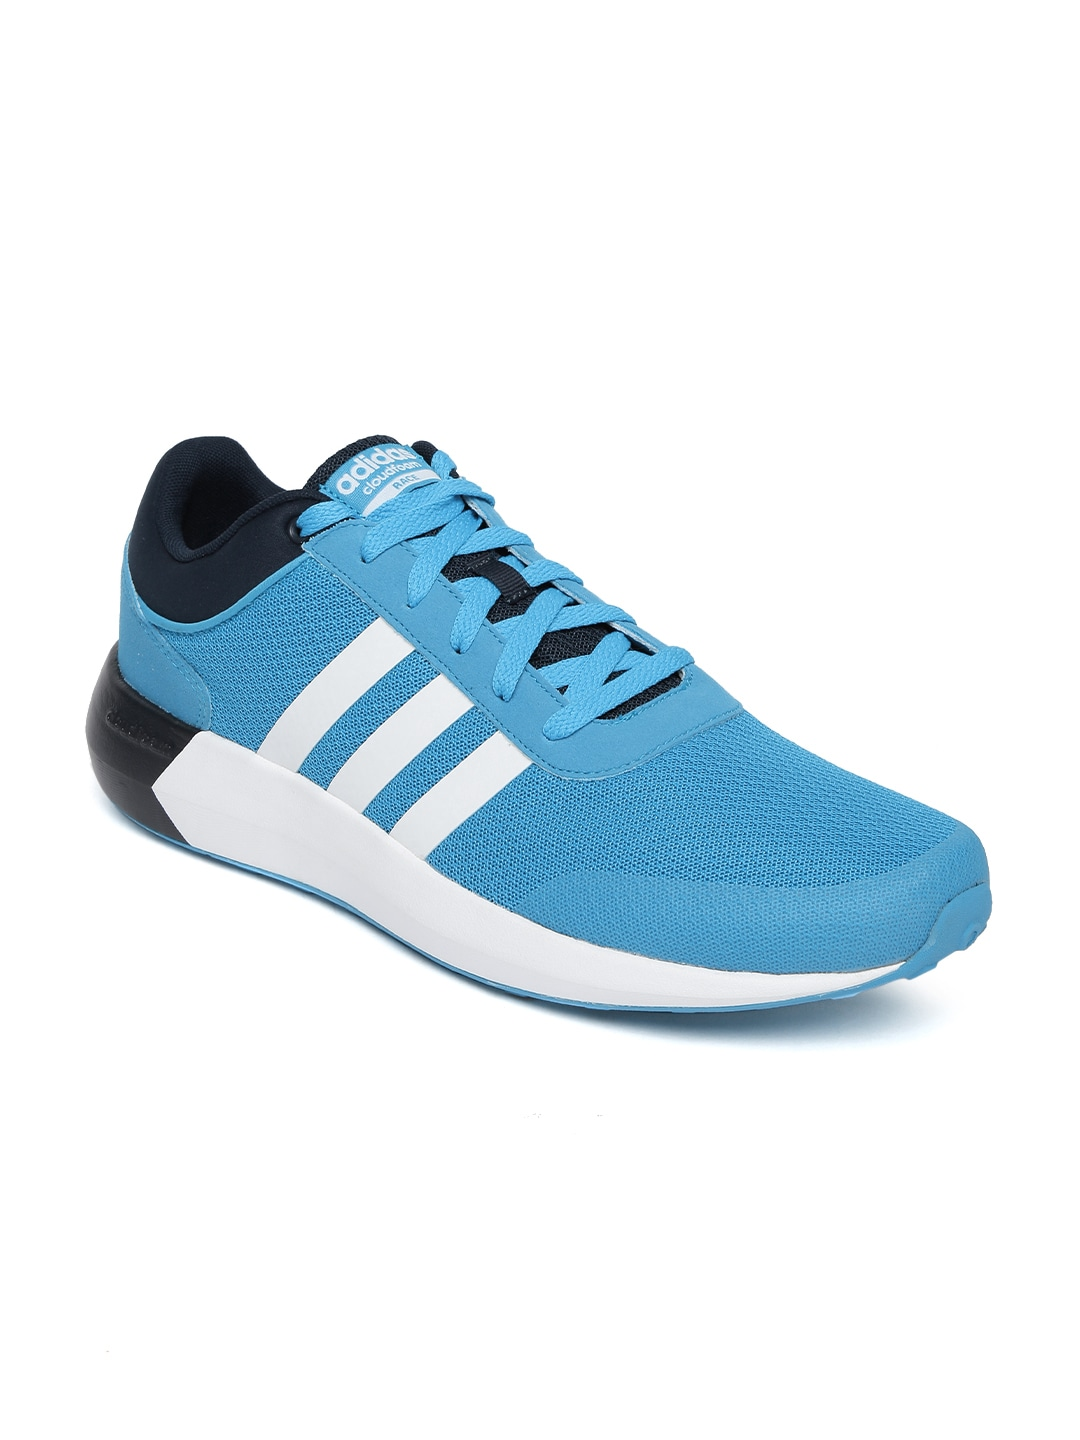 efc1b9a735ac6b ... official store adidas neo men blue cloudfoam race running shoes price  in india 1d923 e8278